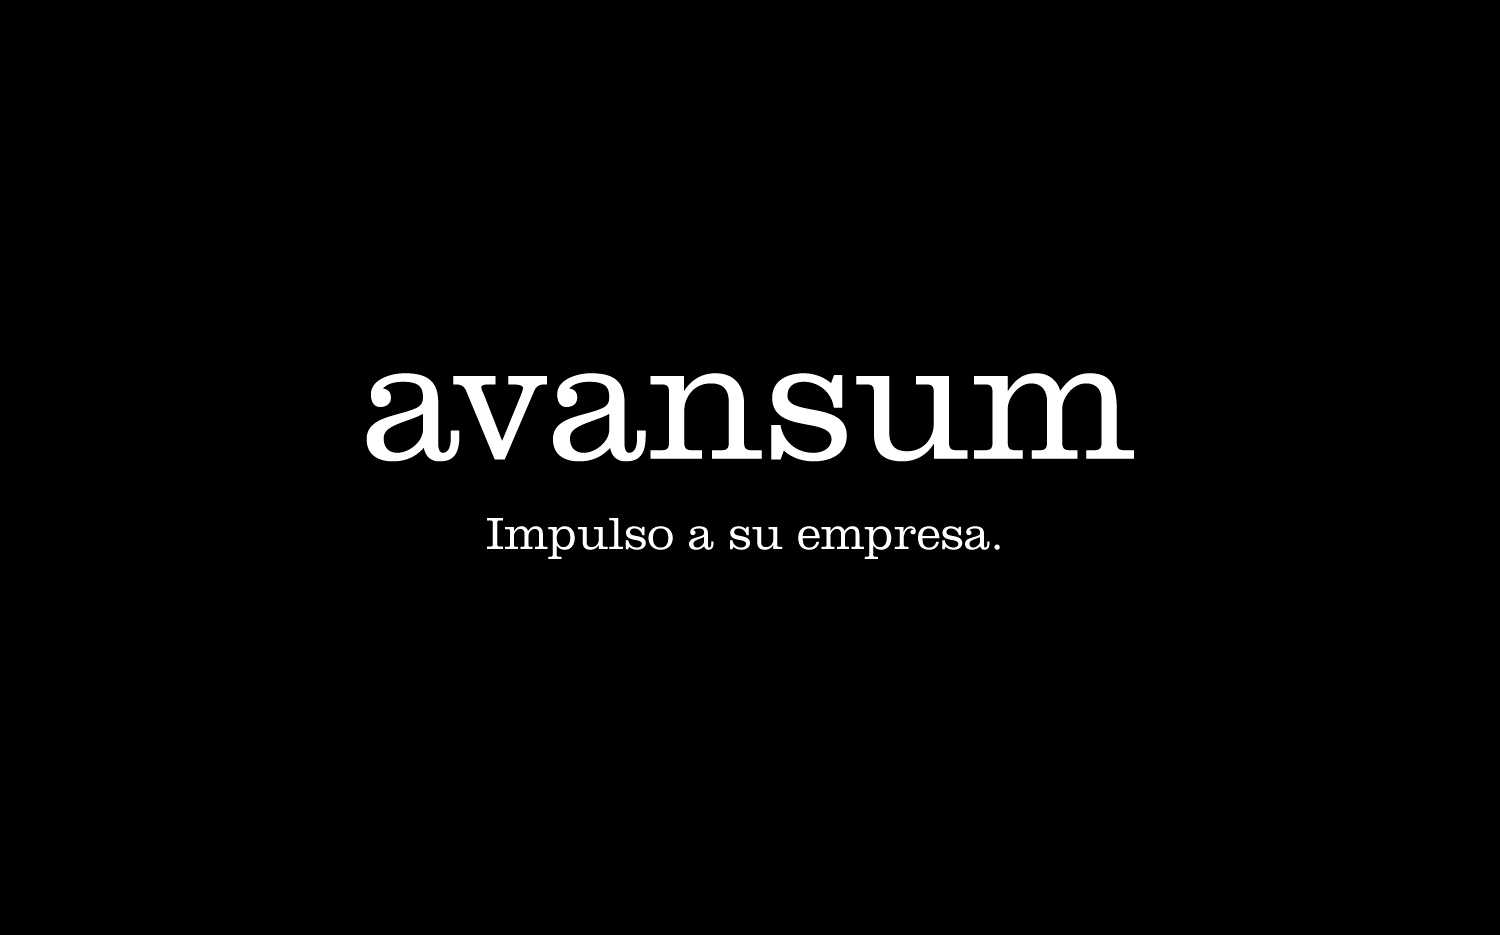 Naming de la consultora financiera Avansum